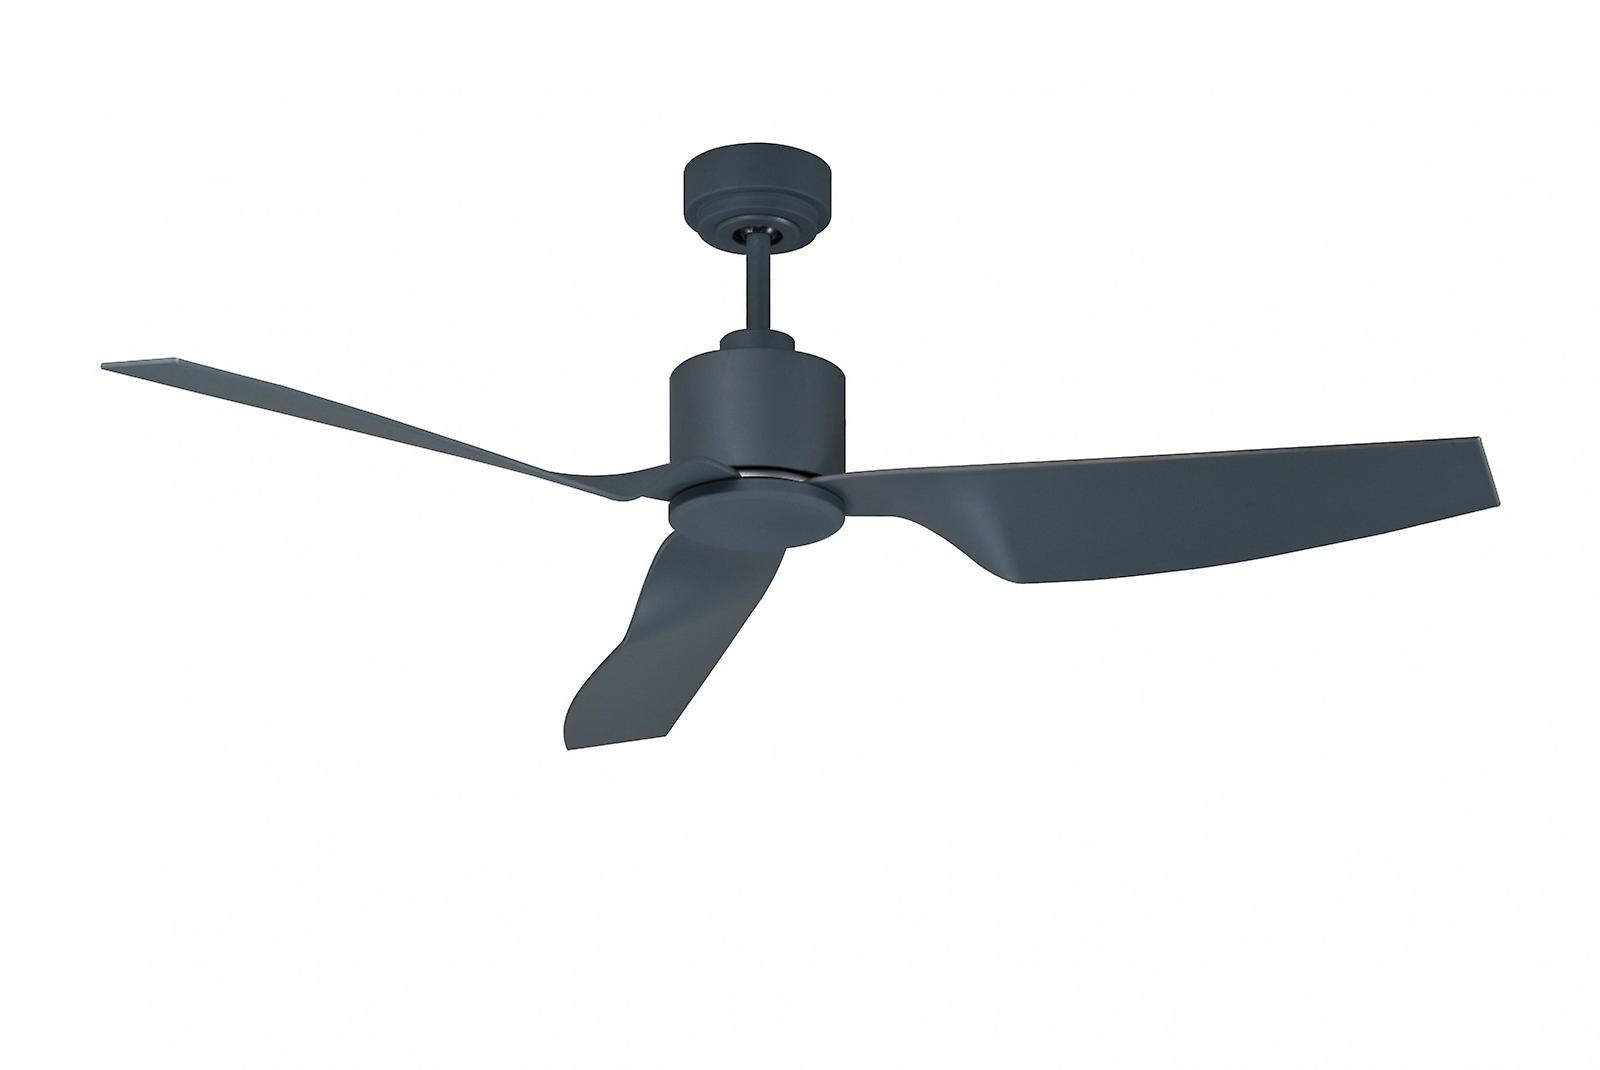 Beacon ceiling fan airfusion climate ii graphite 127 cm 50 with beacon ceiling fan airfusion climate ii graphite 127 cm 50 aloadofball Gallery